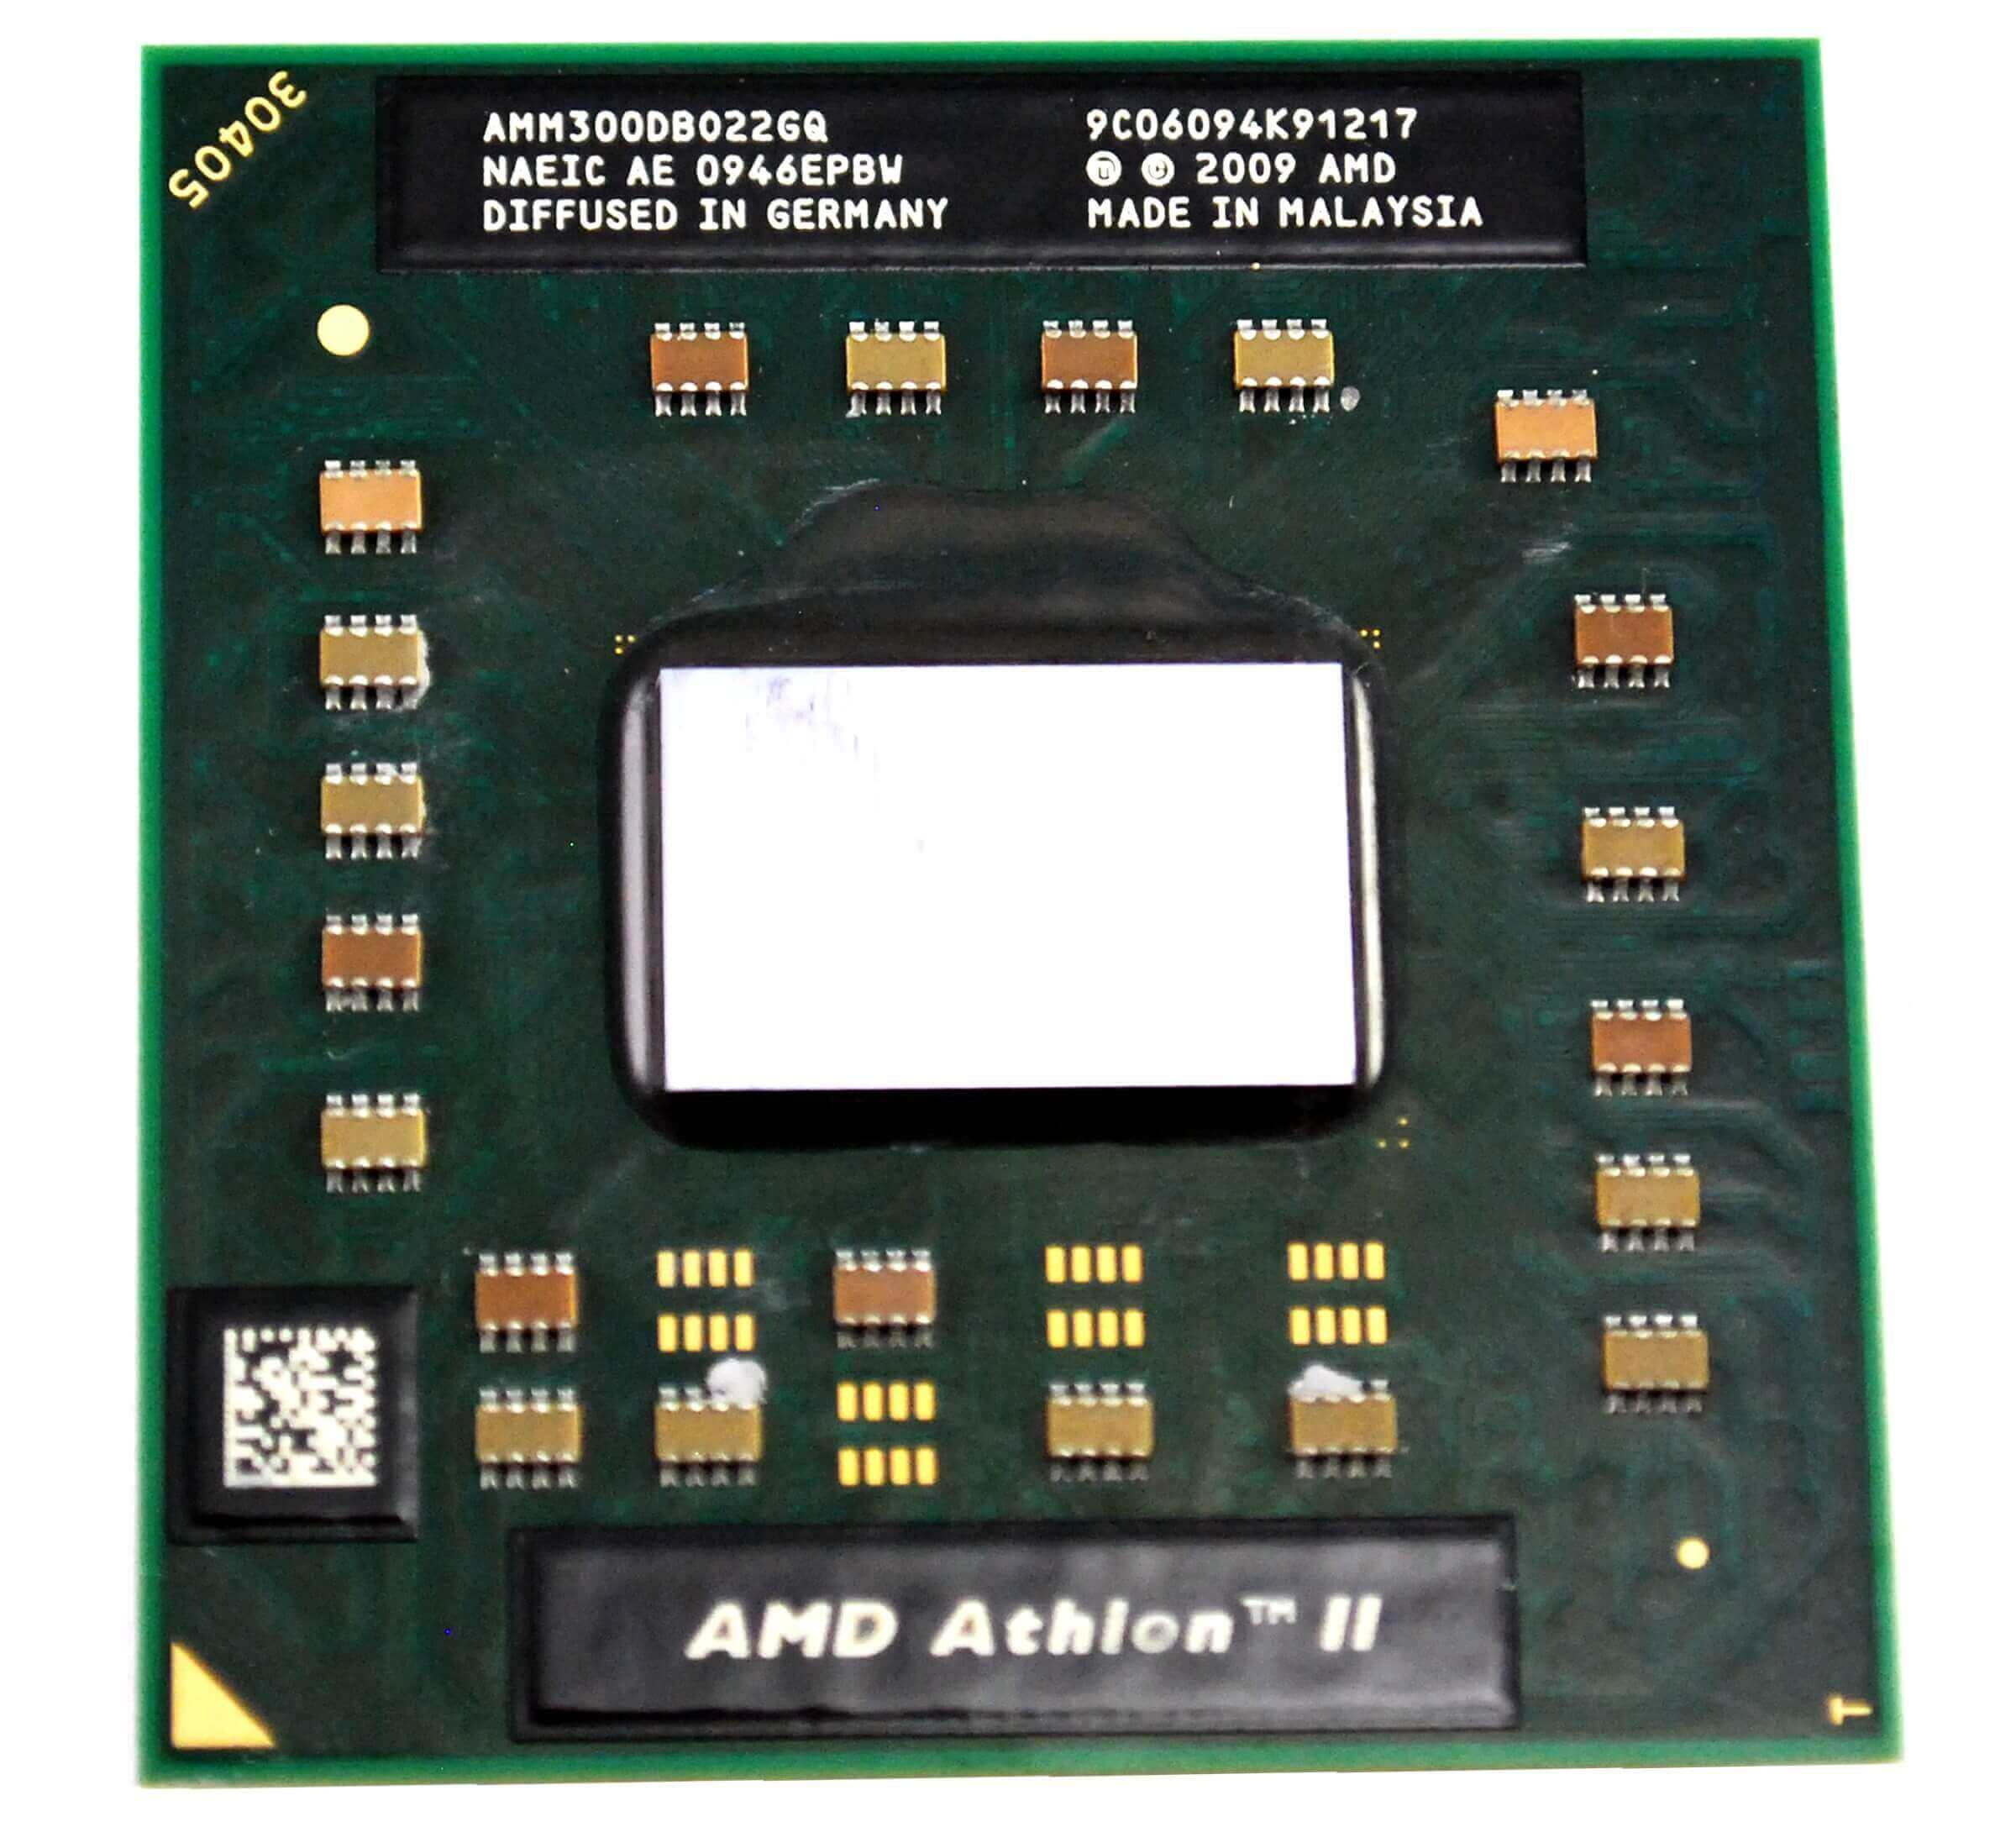 Картинка AMD Athlon II Dual-Core Mobile M300 AMM300DB022GQ (Я097) (Я096) от магазина NBS Parts